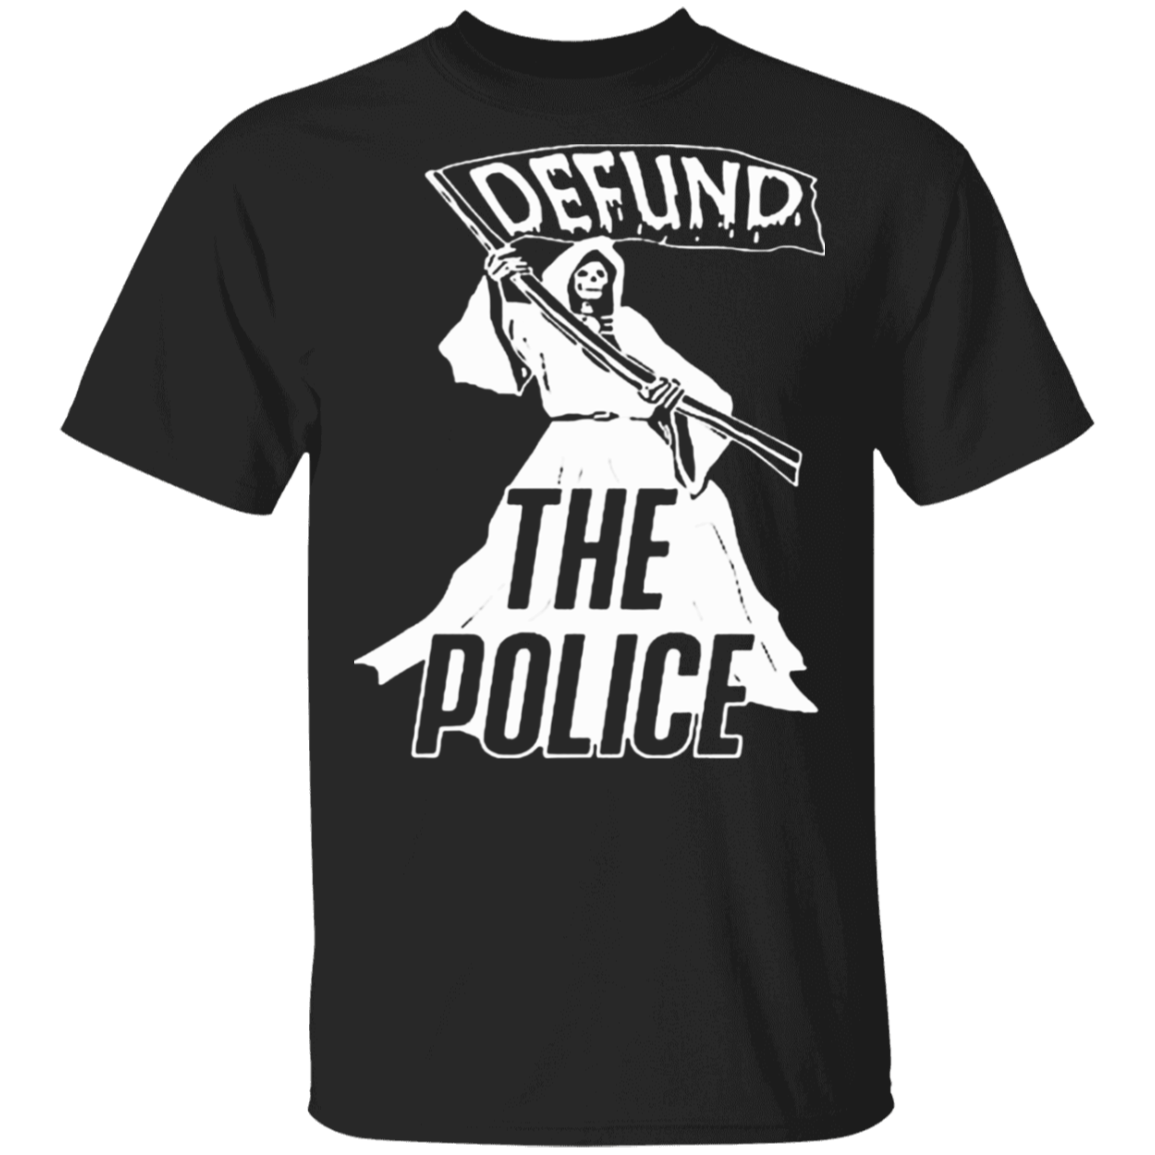 Defund The Police Is Ridiculous T-Shirt Be Kind Asl Shirt Blm Fist